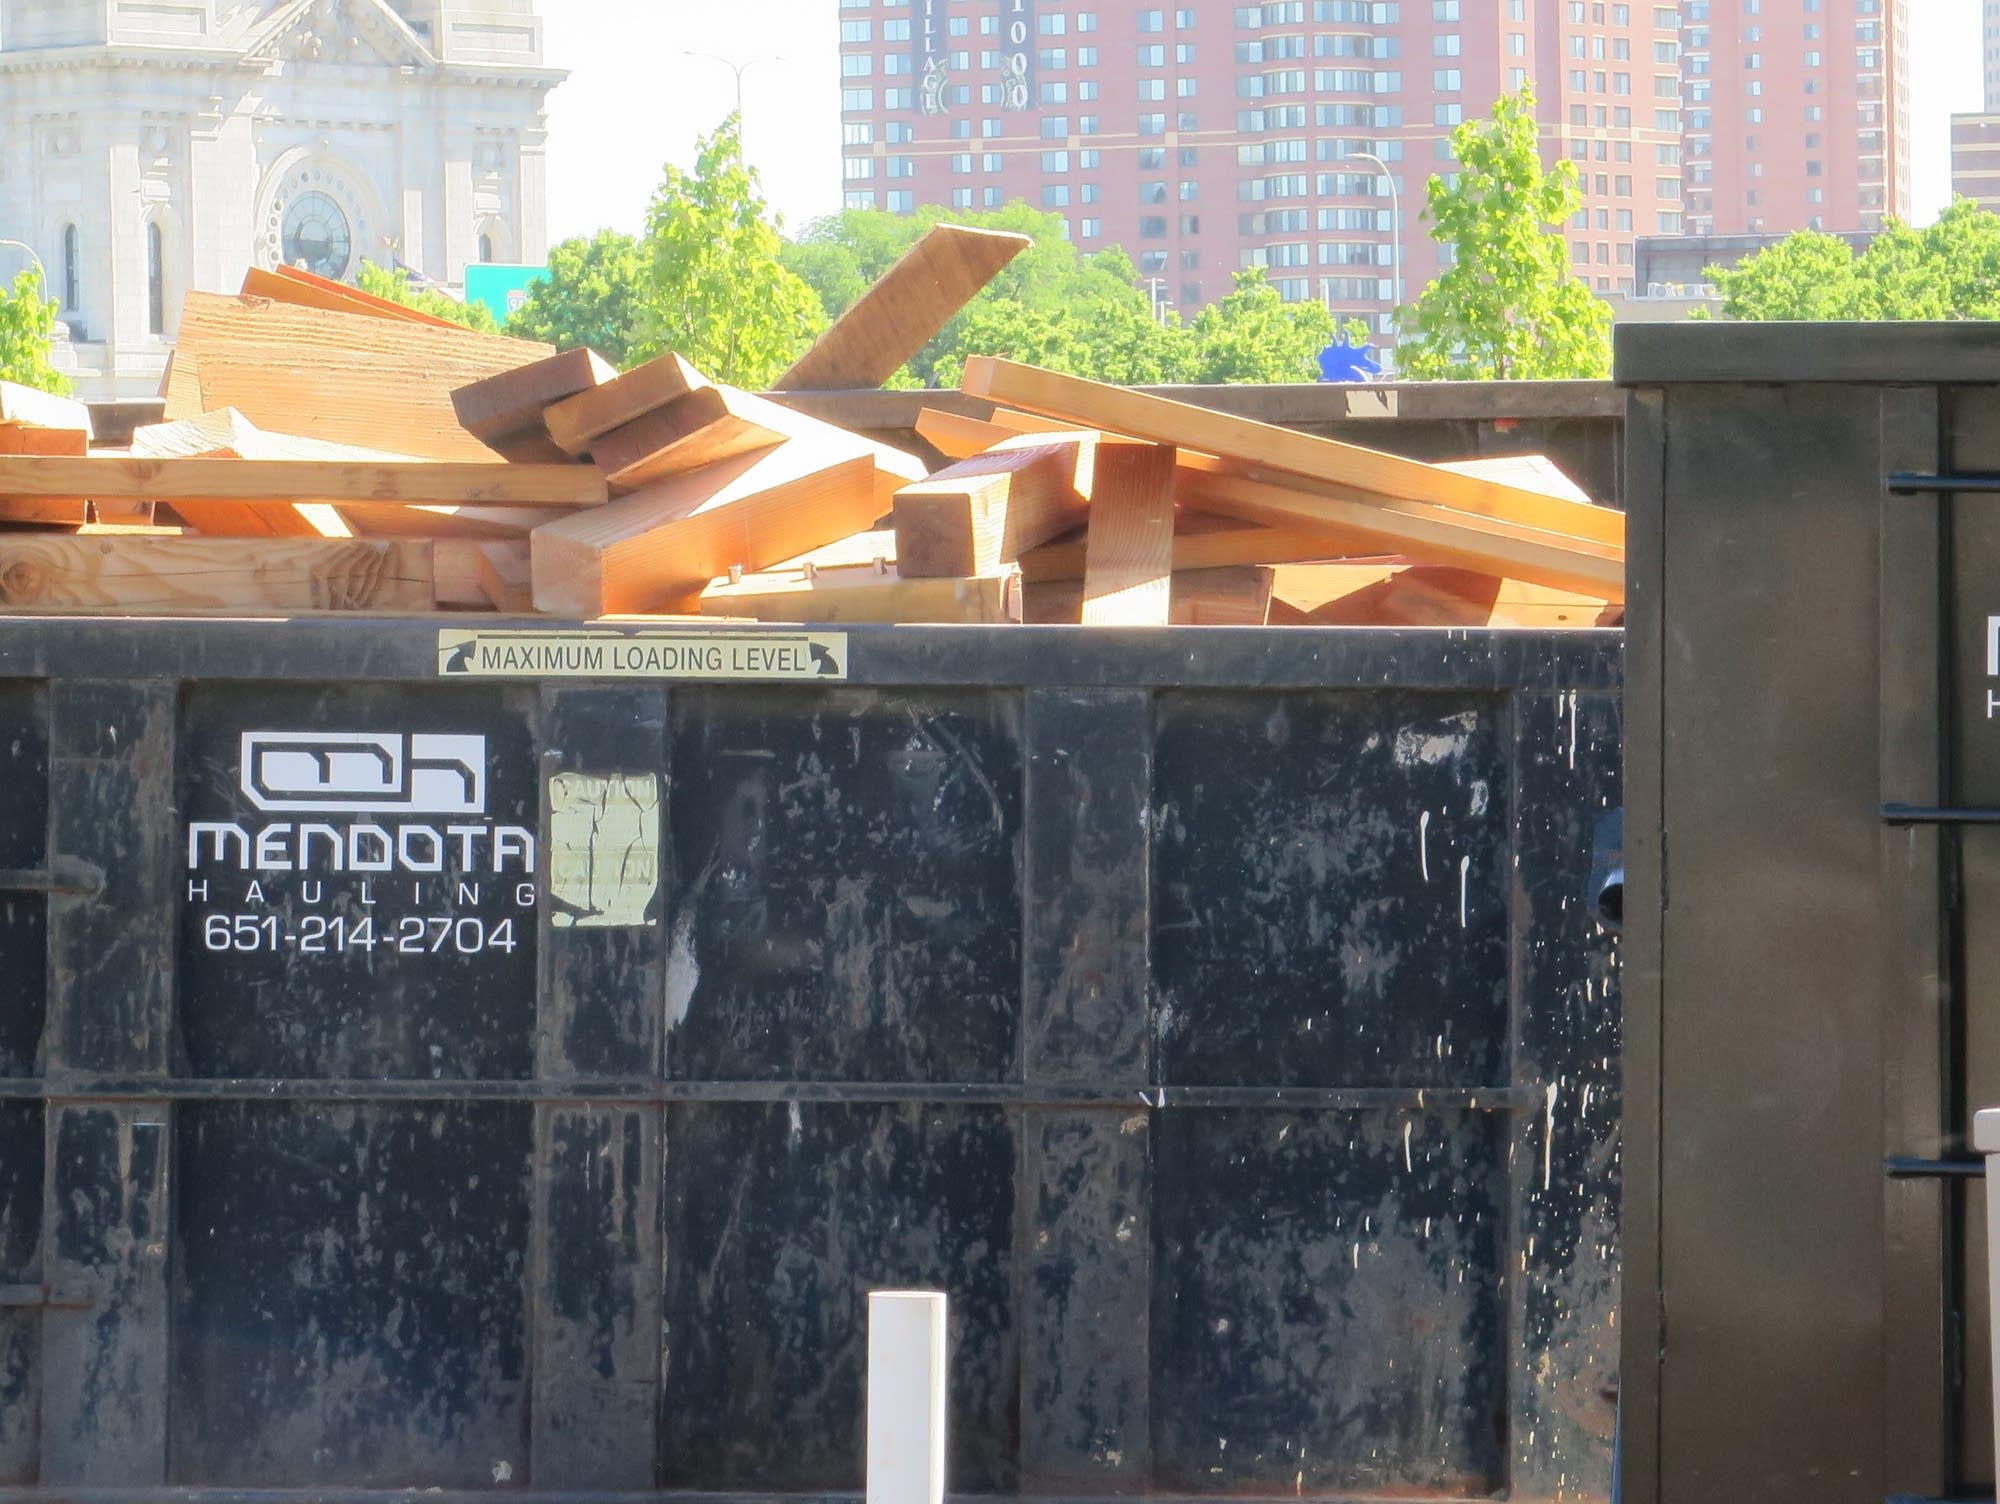 Workers cut up the wood and put it in construction dumpsters